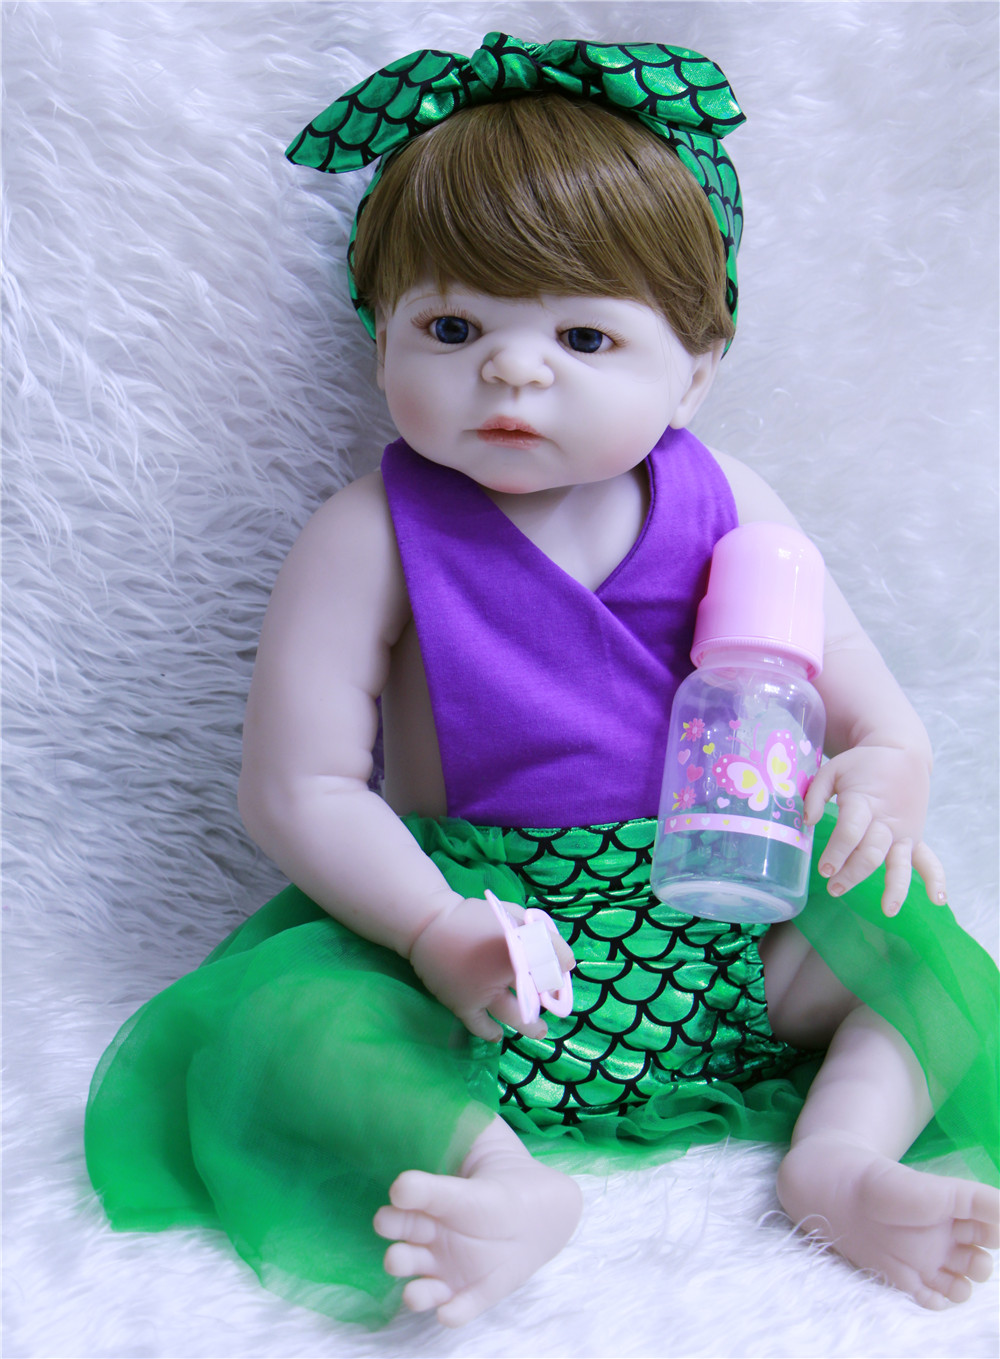 55cm Collectible doll Full Body Vinyl Silicone Reborn Toddler Princess lifelike Realistic lol doll bathe brinquedos birthday toy55cm Collectible doll Full Body Vinyl Silicone Reborn Toddler Princess lifelike Realistic lol doll bathe brinquedos birthday toy